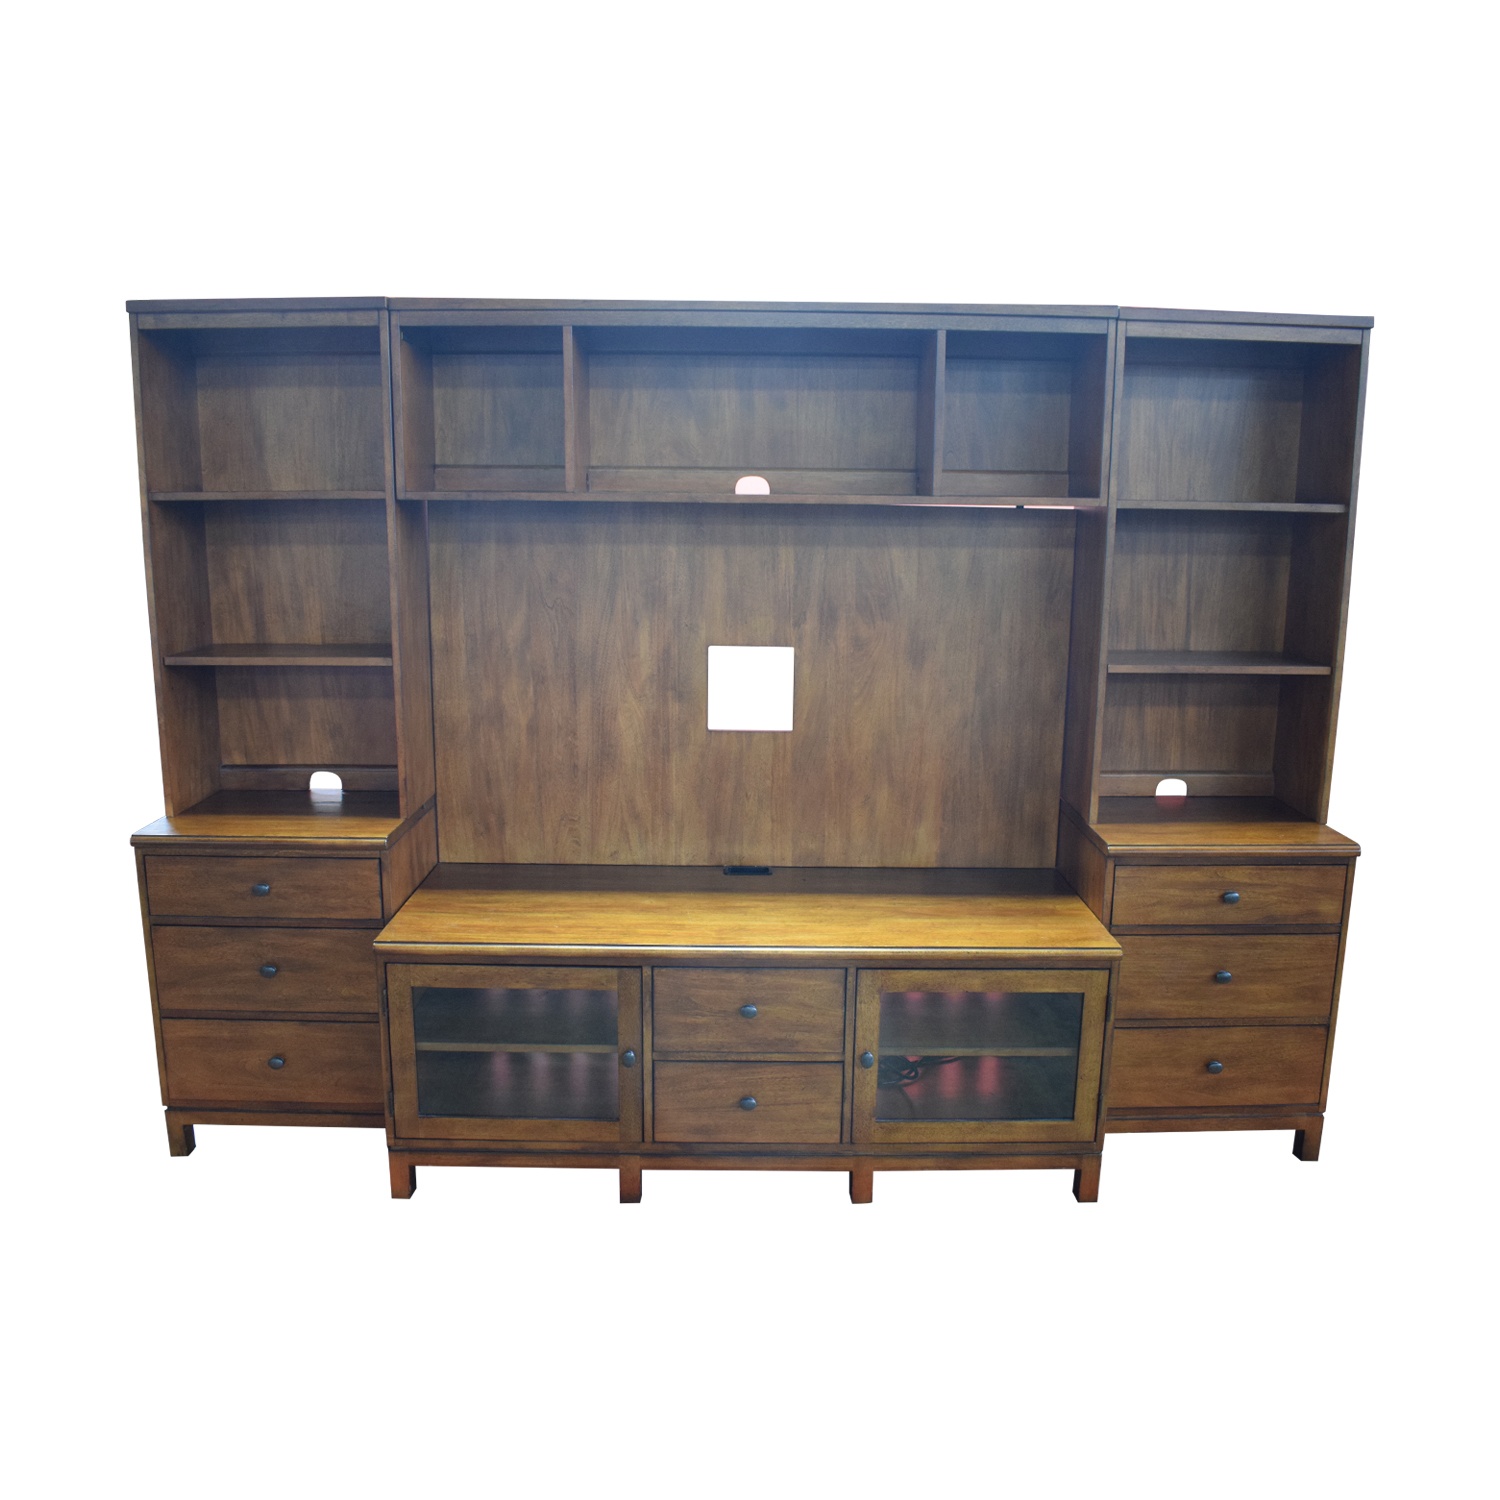 Ethan Allen Wood Media Center with Drawers and Shelves sale